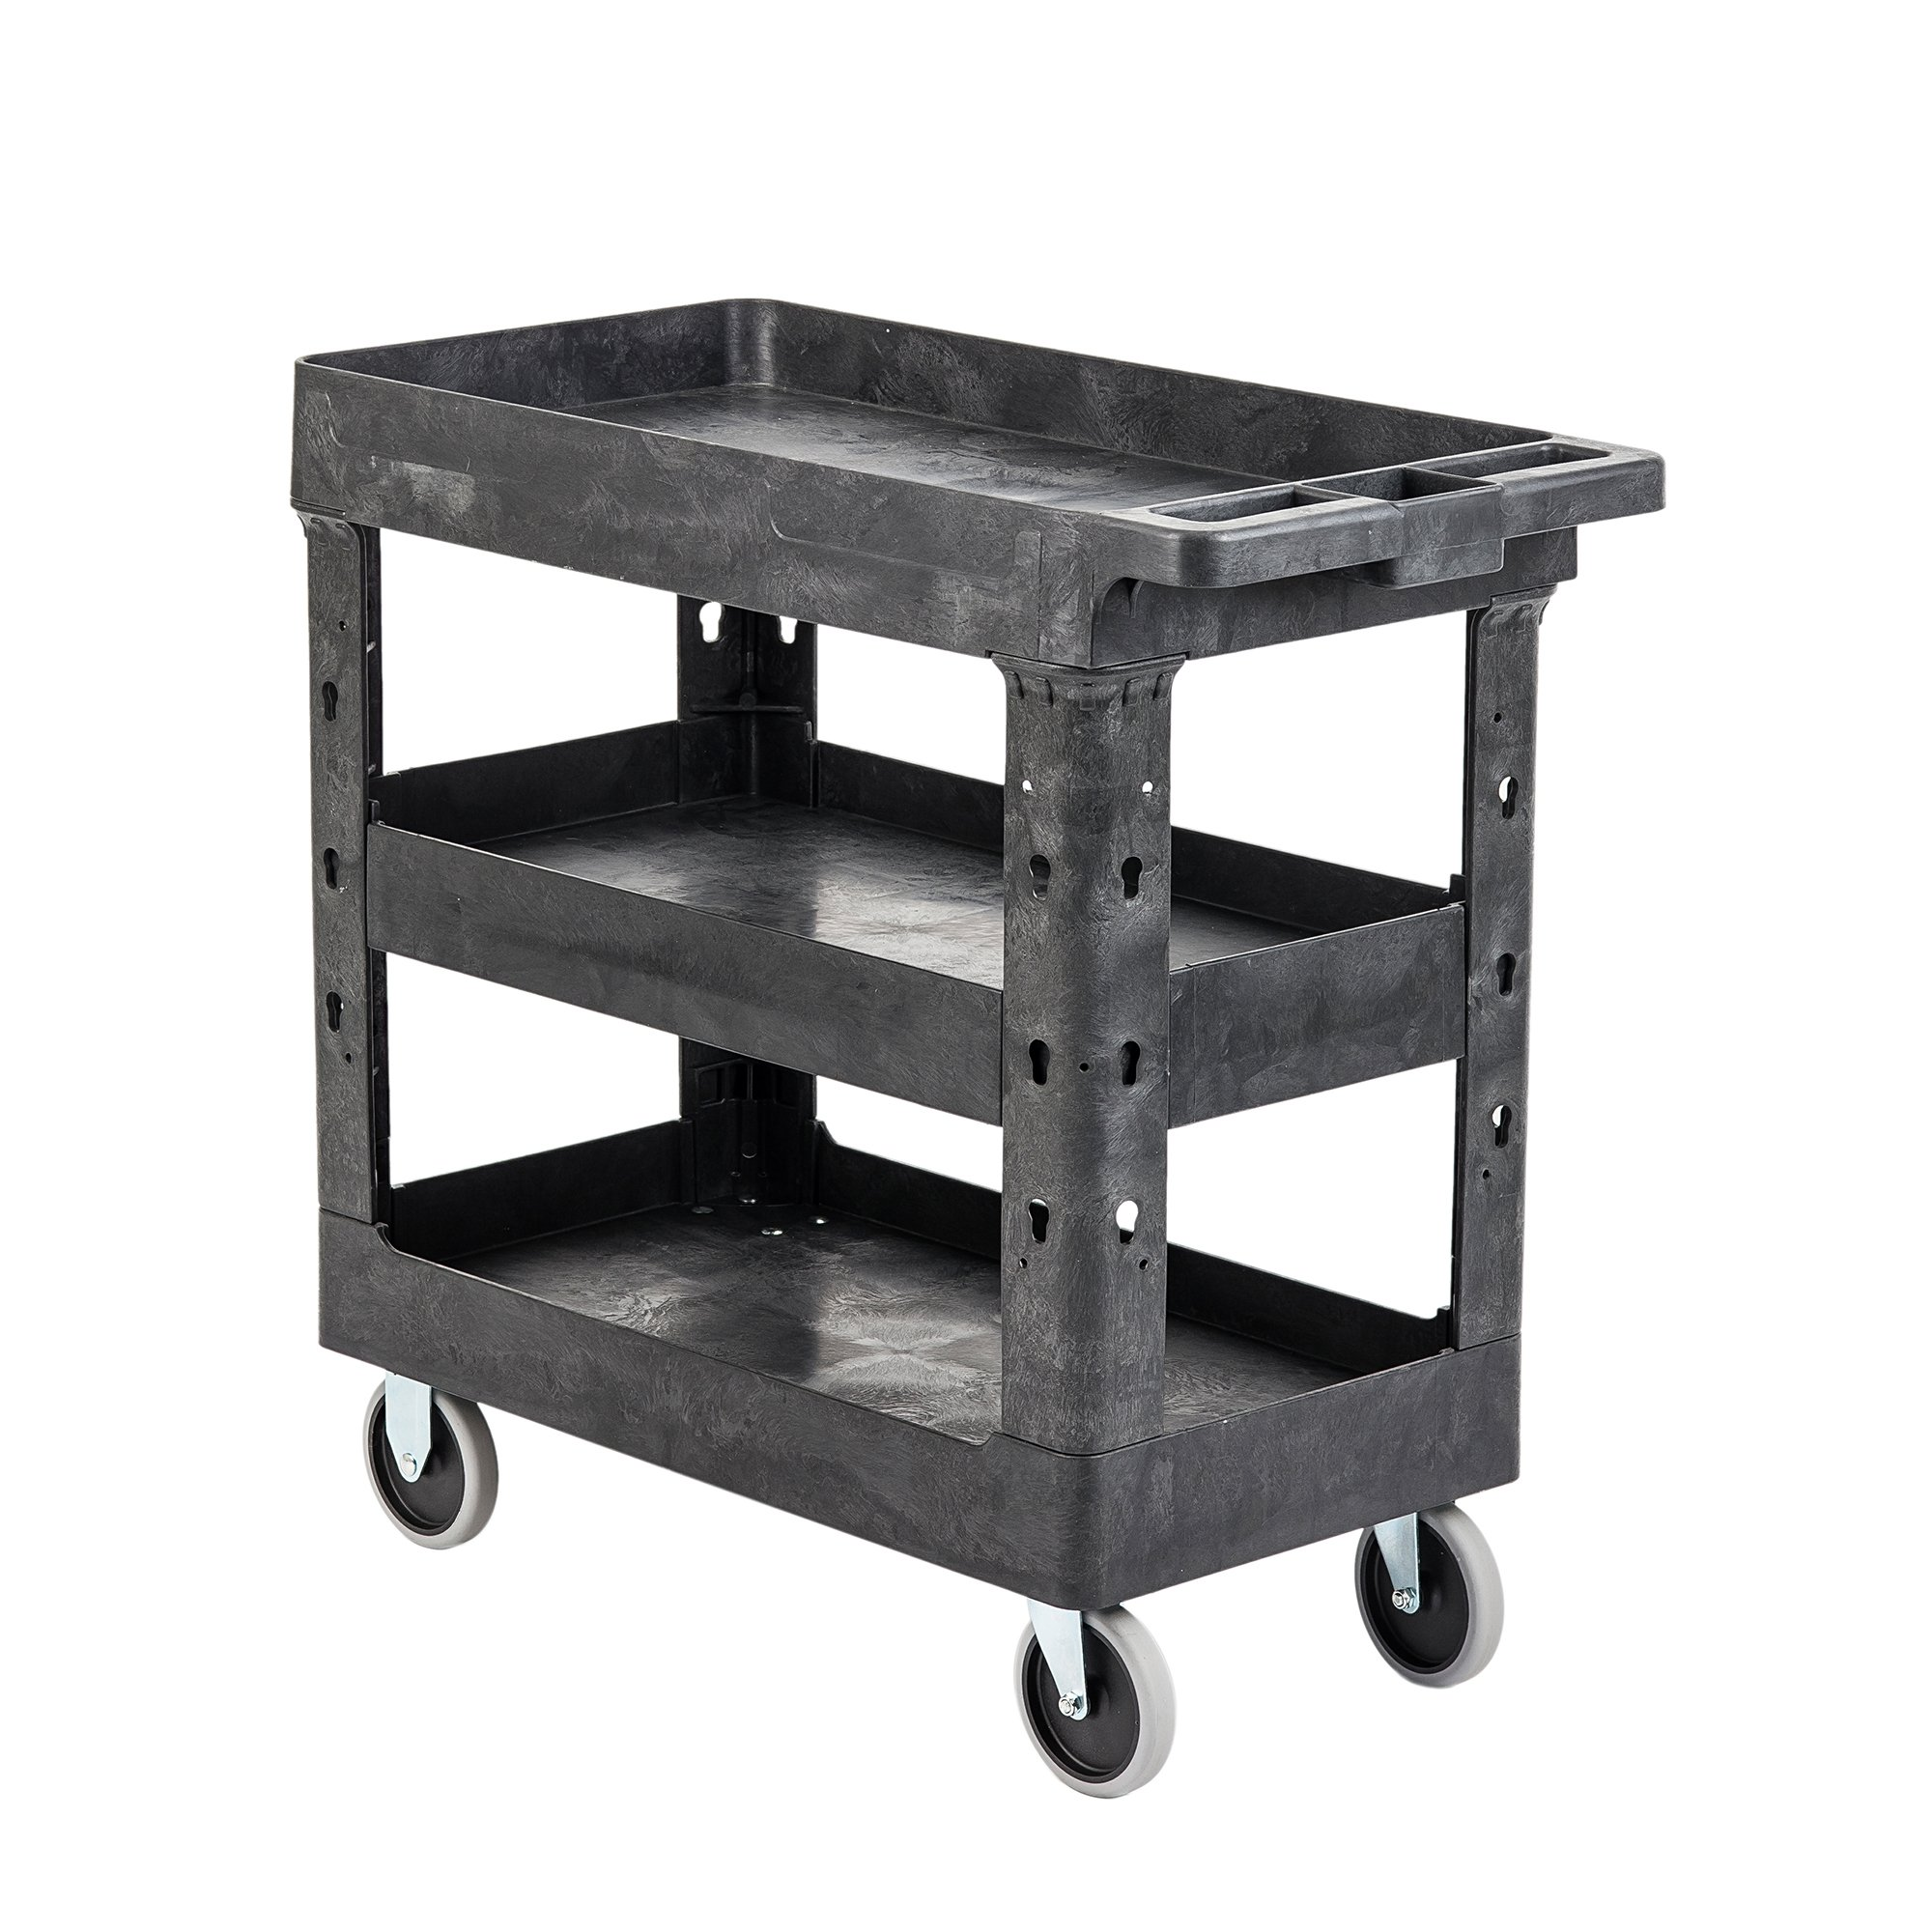 Pearington Utility Rolling Cart- Multi Purpose, Heavy Duty Service Cart; Supplies Storage and Organizer; 3 Tier with Wheels- 500lb Loading Capacity, Gray